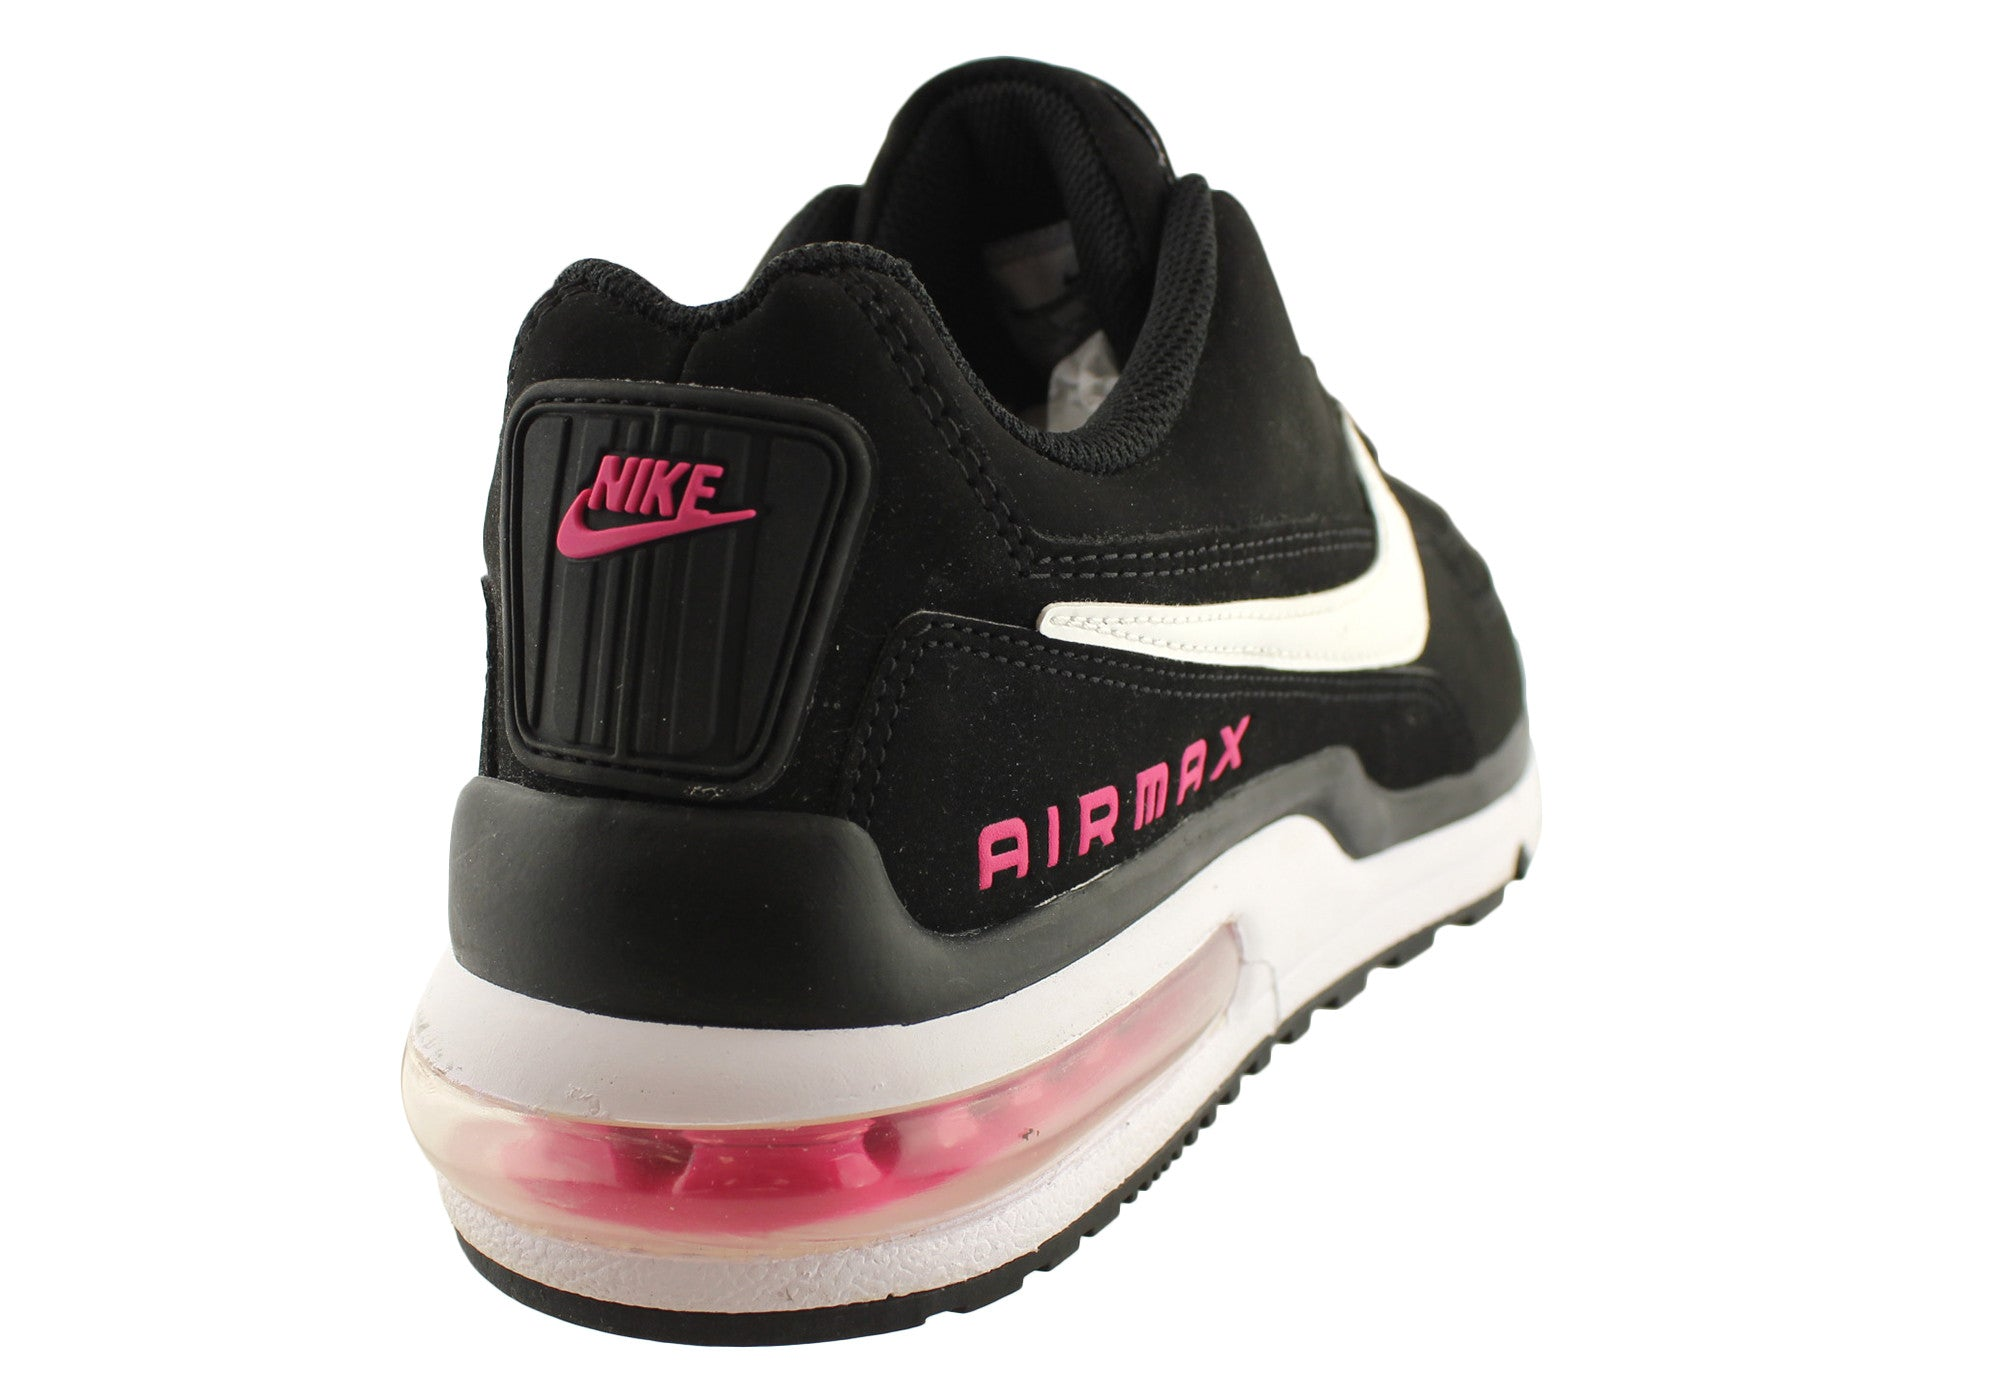 Nike Air Max LTD Mens Sports/Casual Shoes